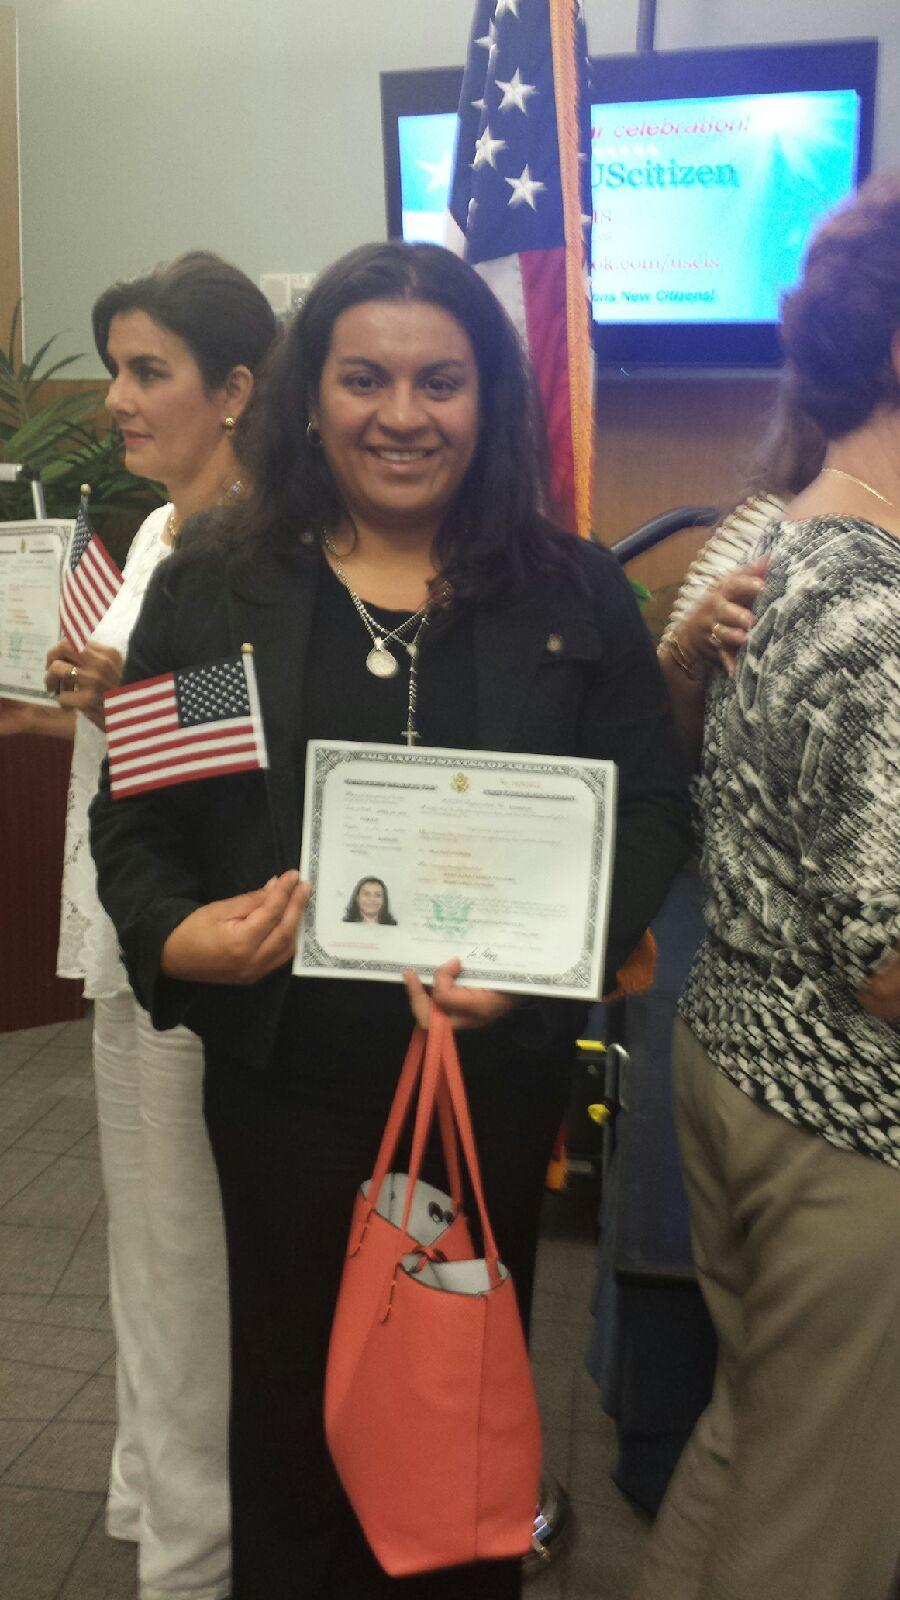 Monica proudly displays her newly received Citizenship Certificate